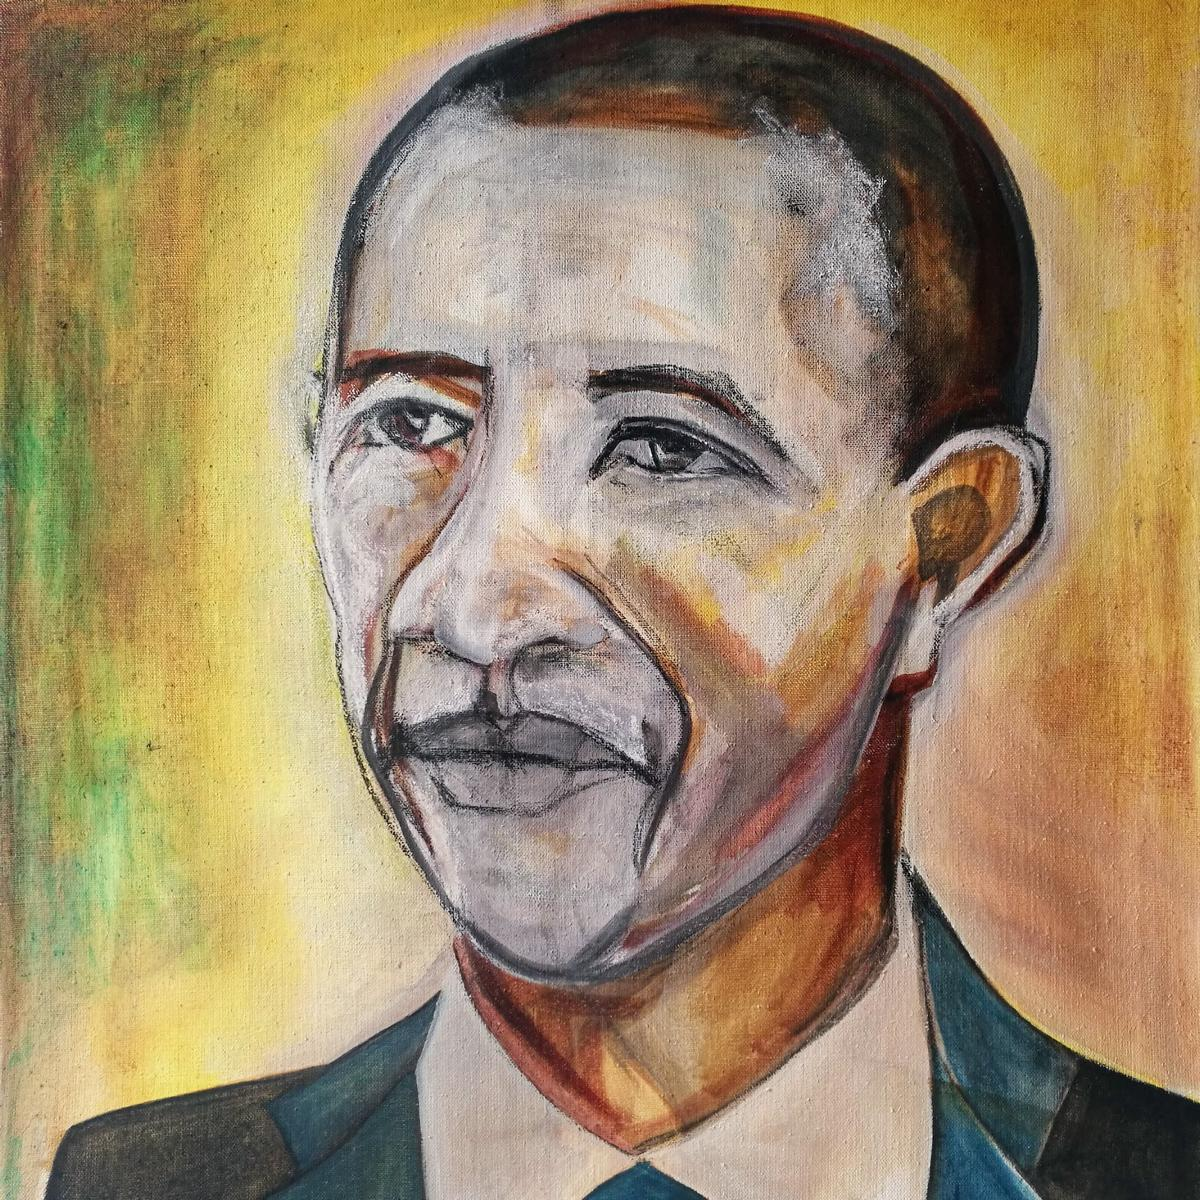 Barack Obama, oil on canvas, 75 x 70 cm, 2013-2015